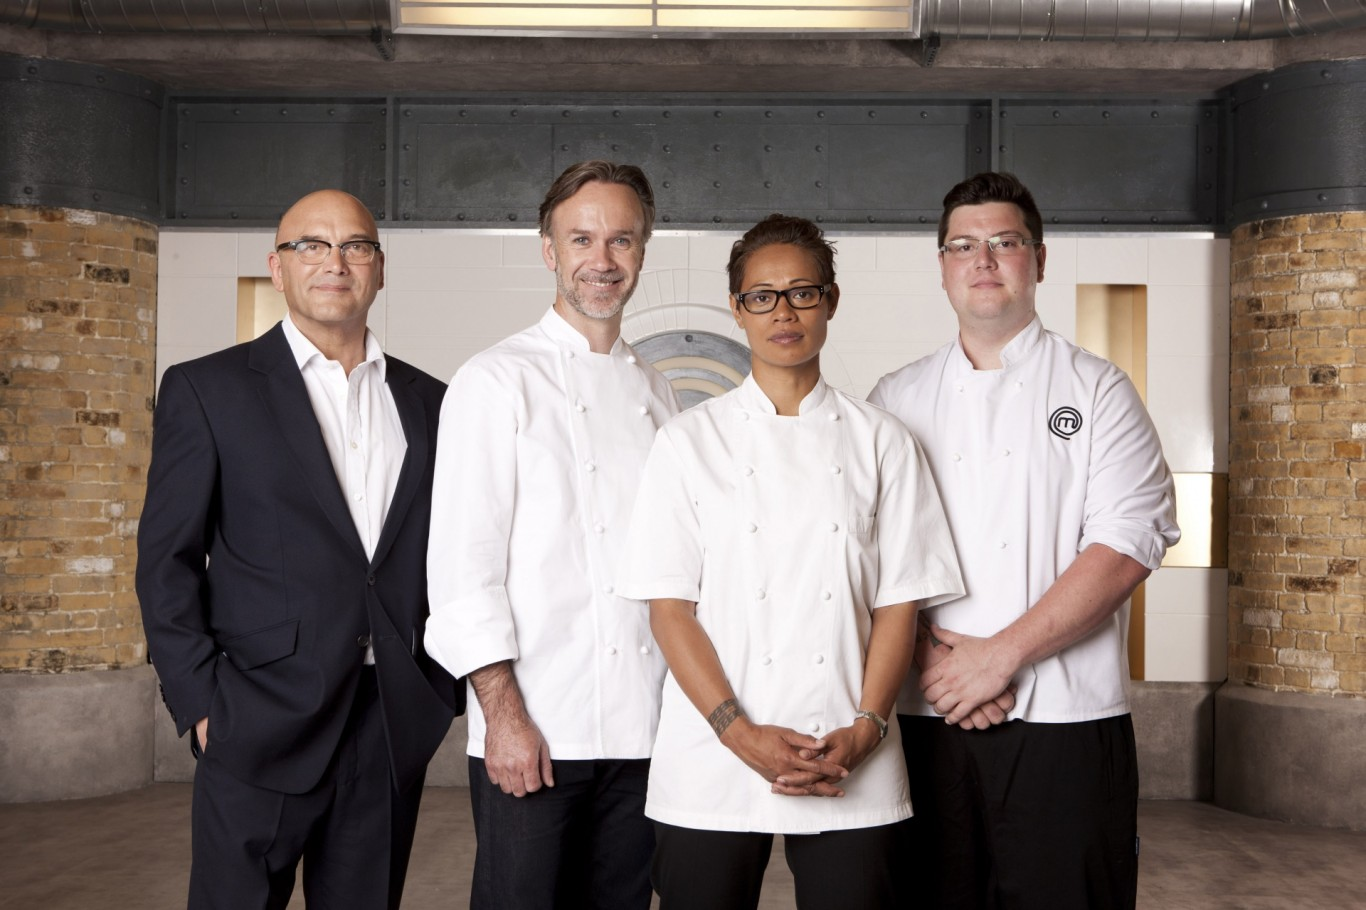 Masterchef judges and 2014 winner